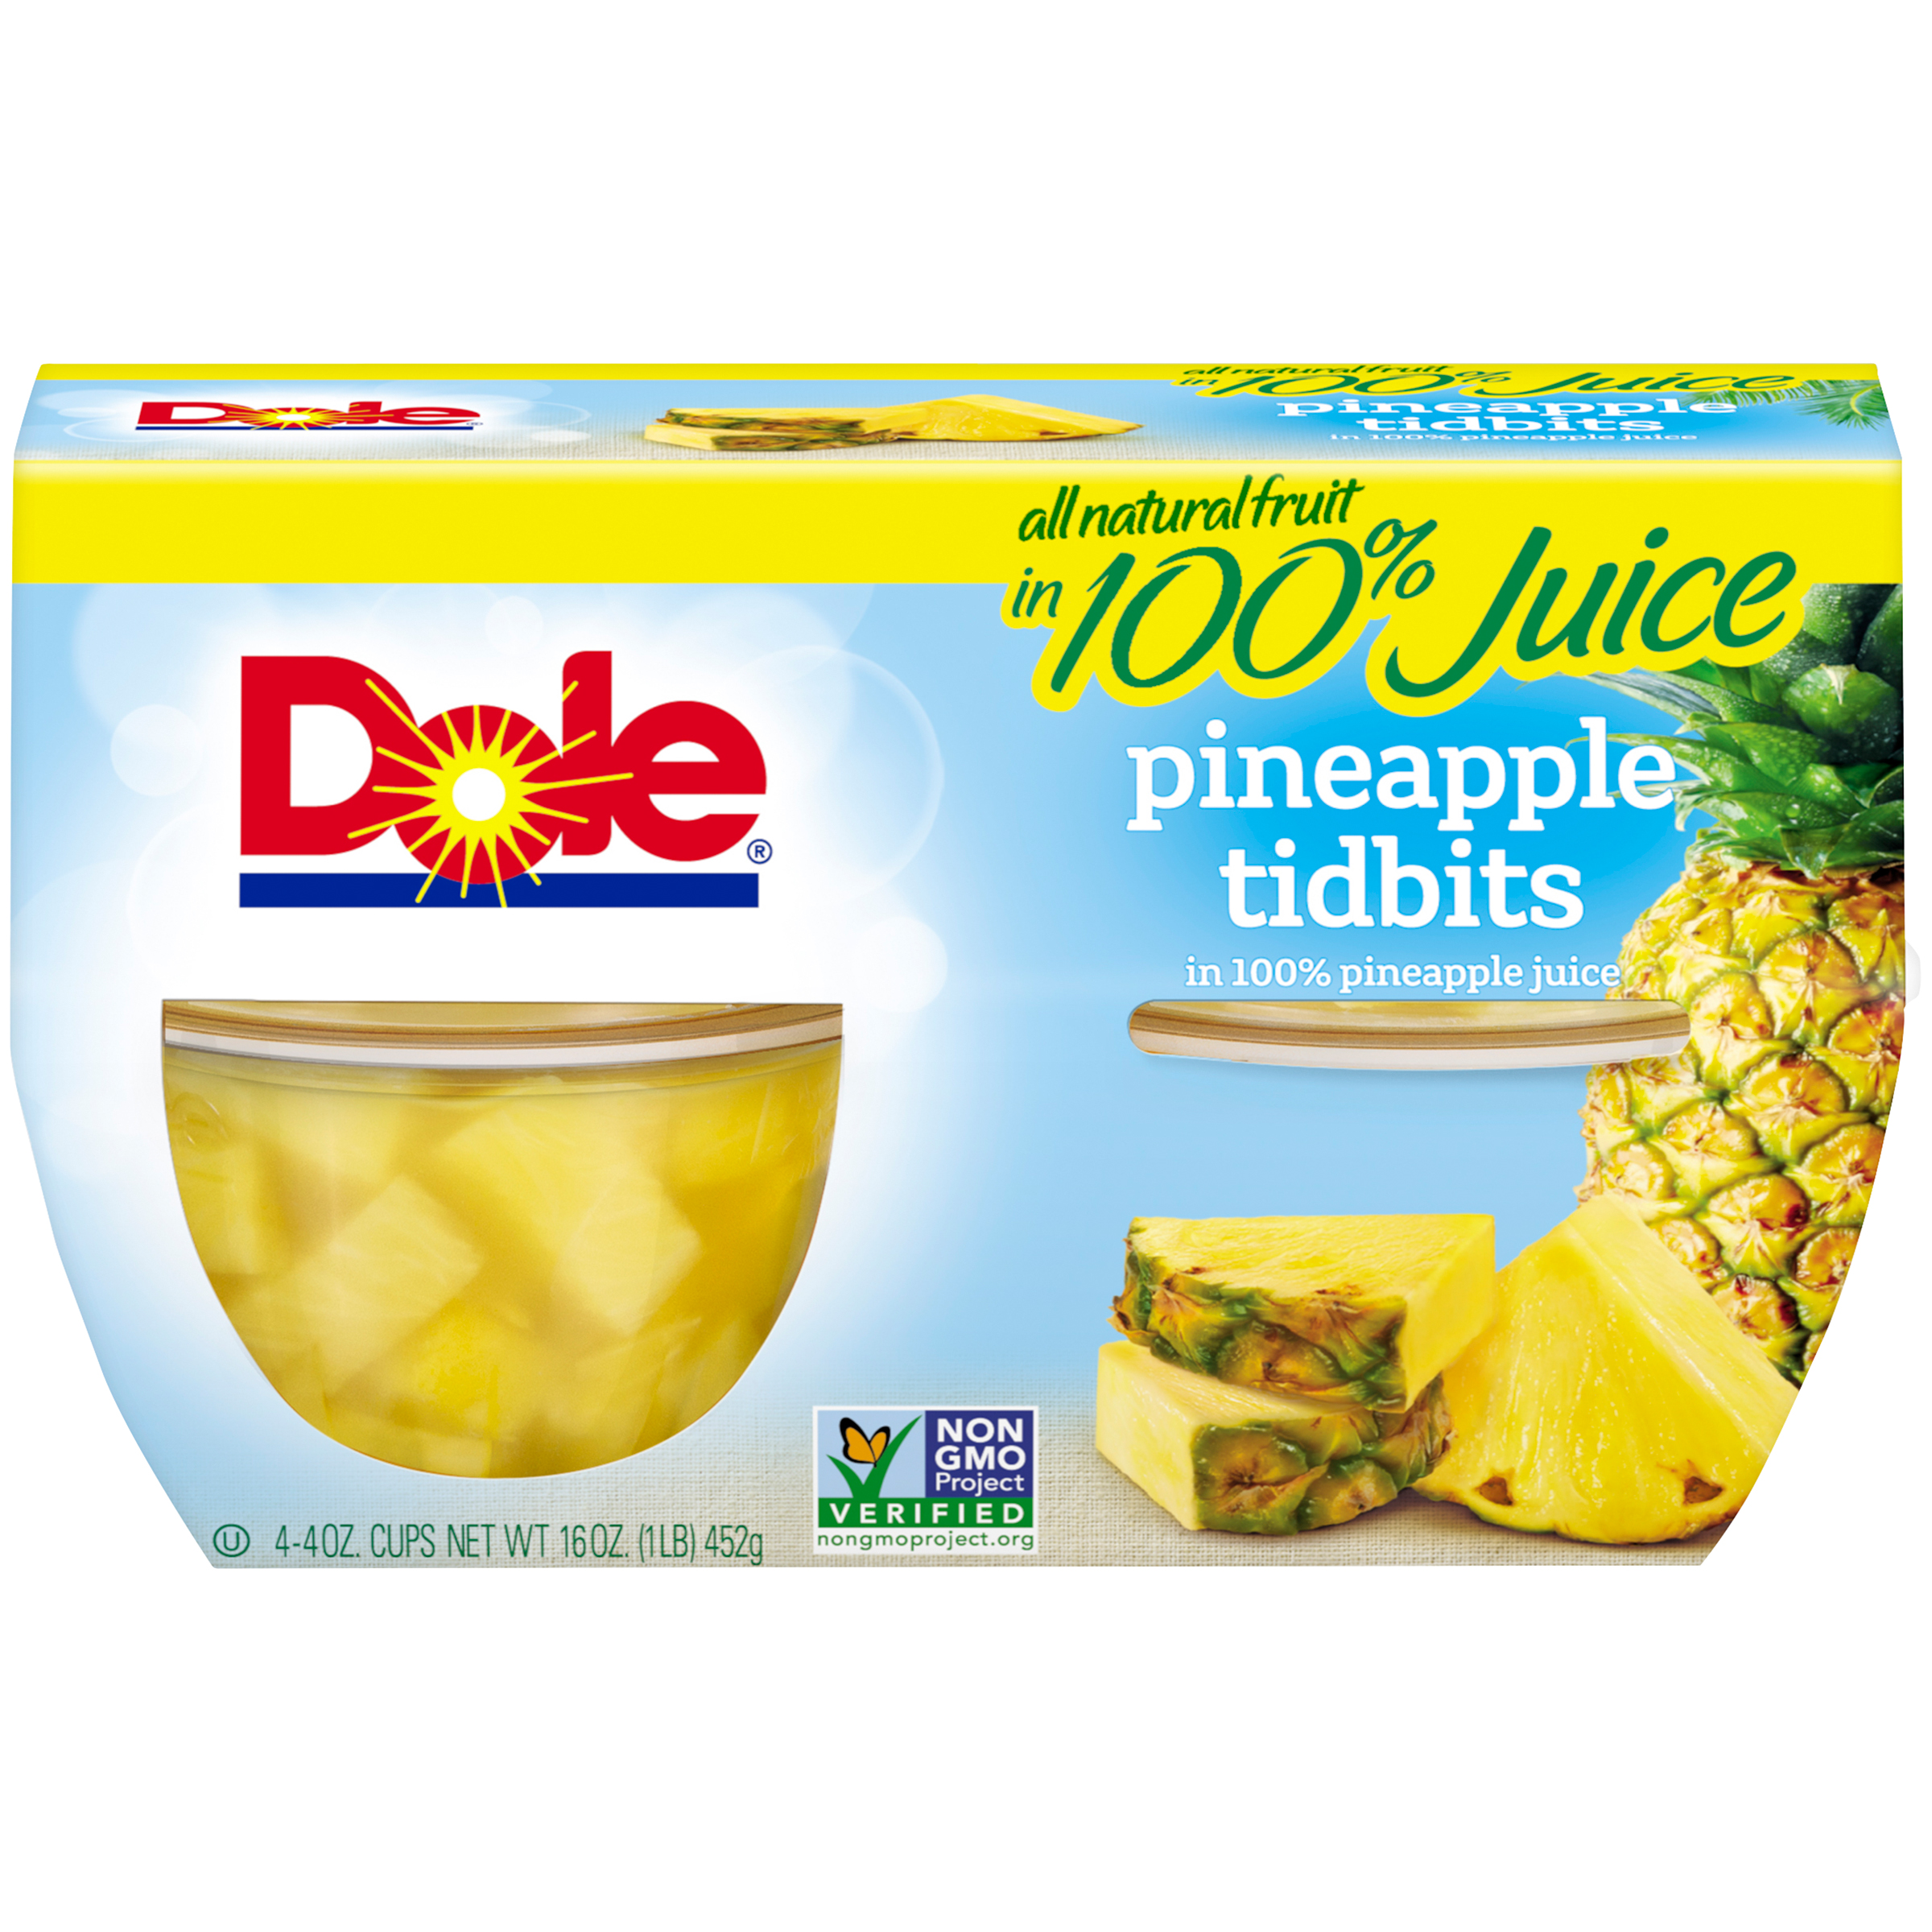 Dole Fruit Bowls, Pineapple Tidbits in 100% Pineapple Juice, 4 Ounce (4 Cups)